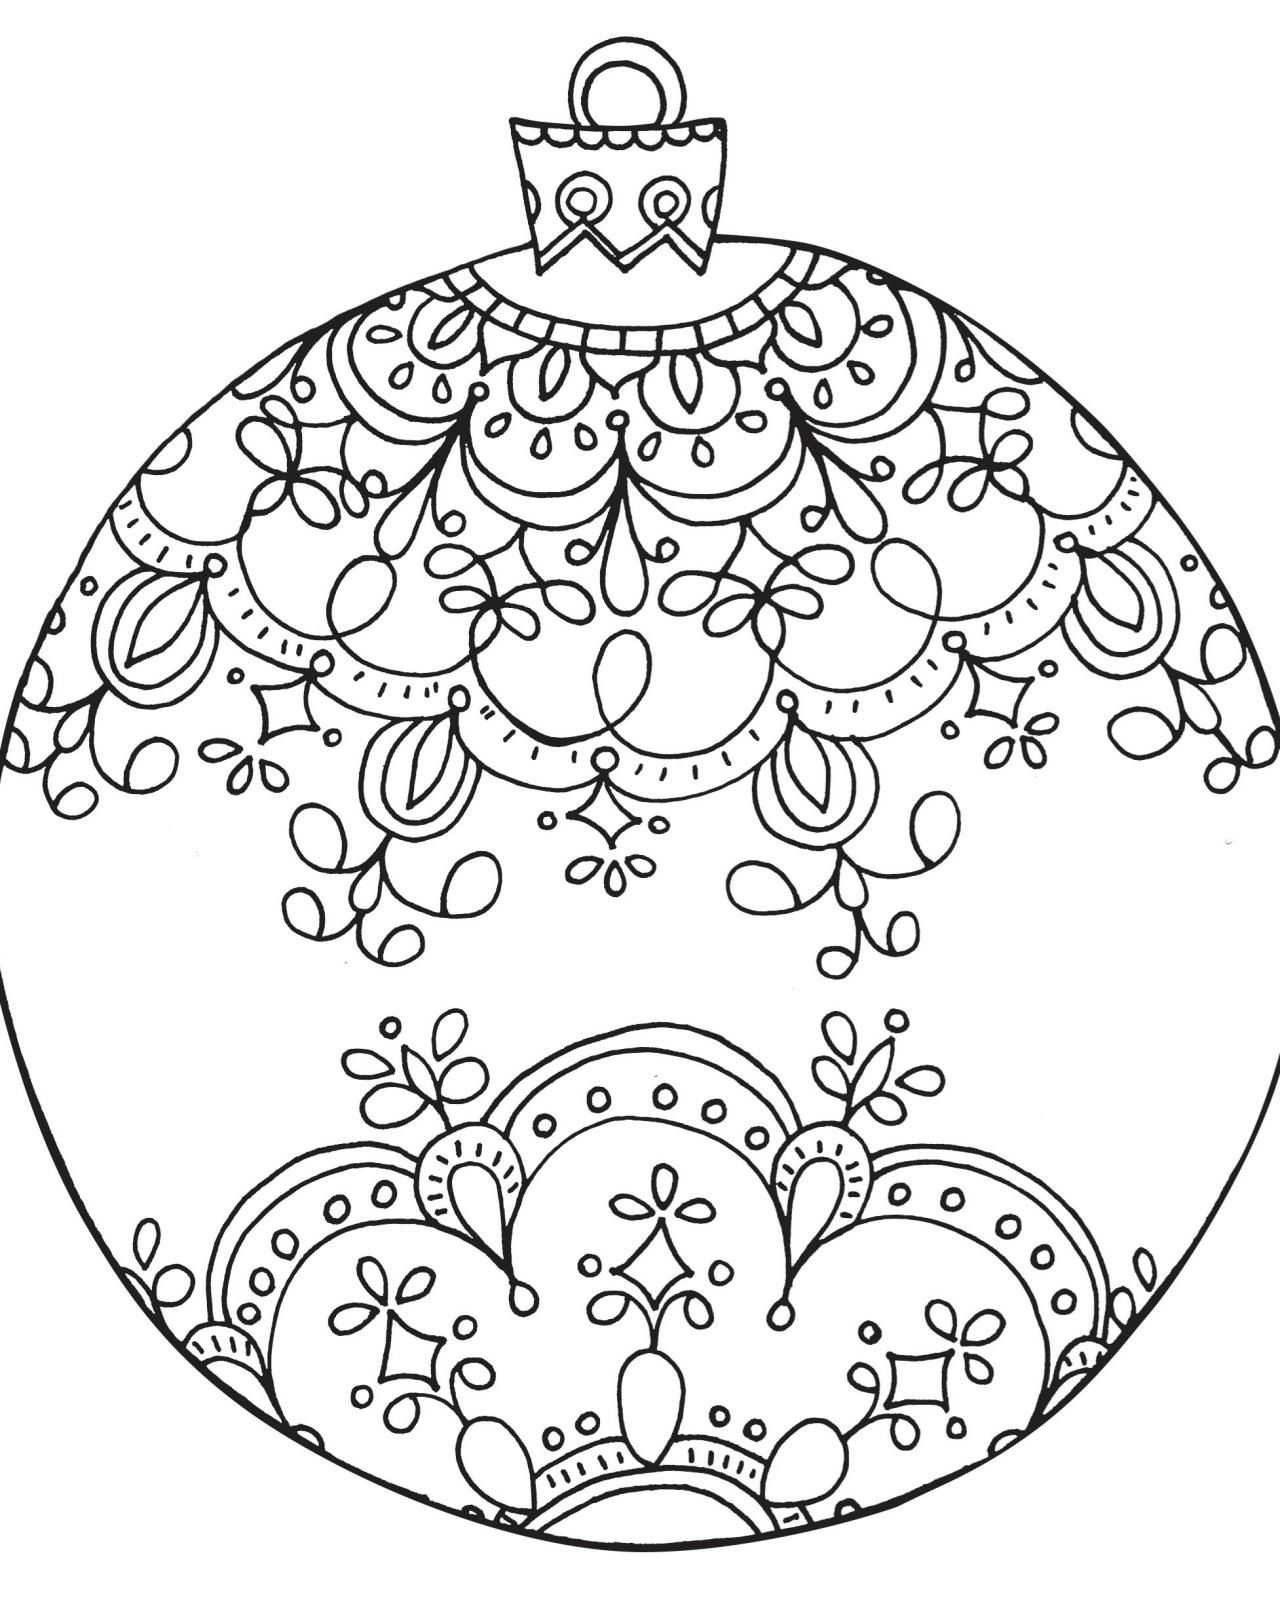 Christmas Coloring Pages For Adults Printable With Free